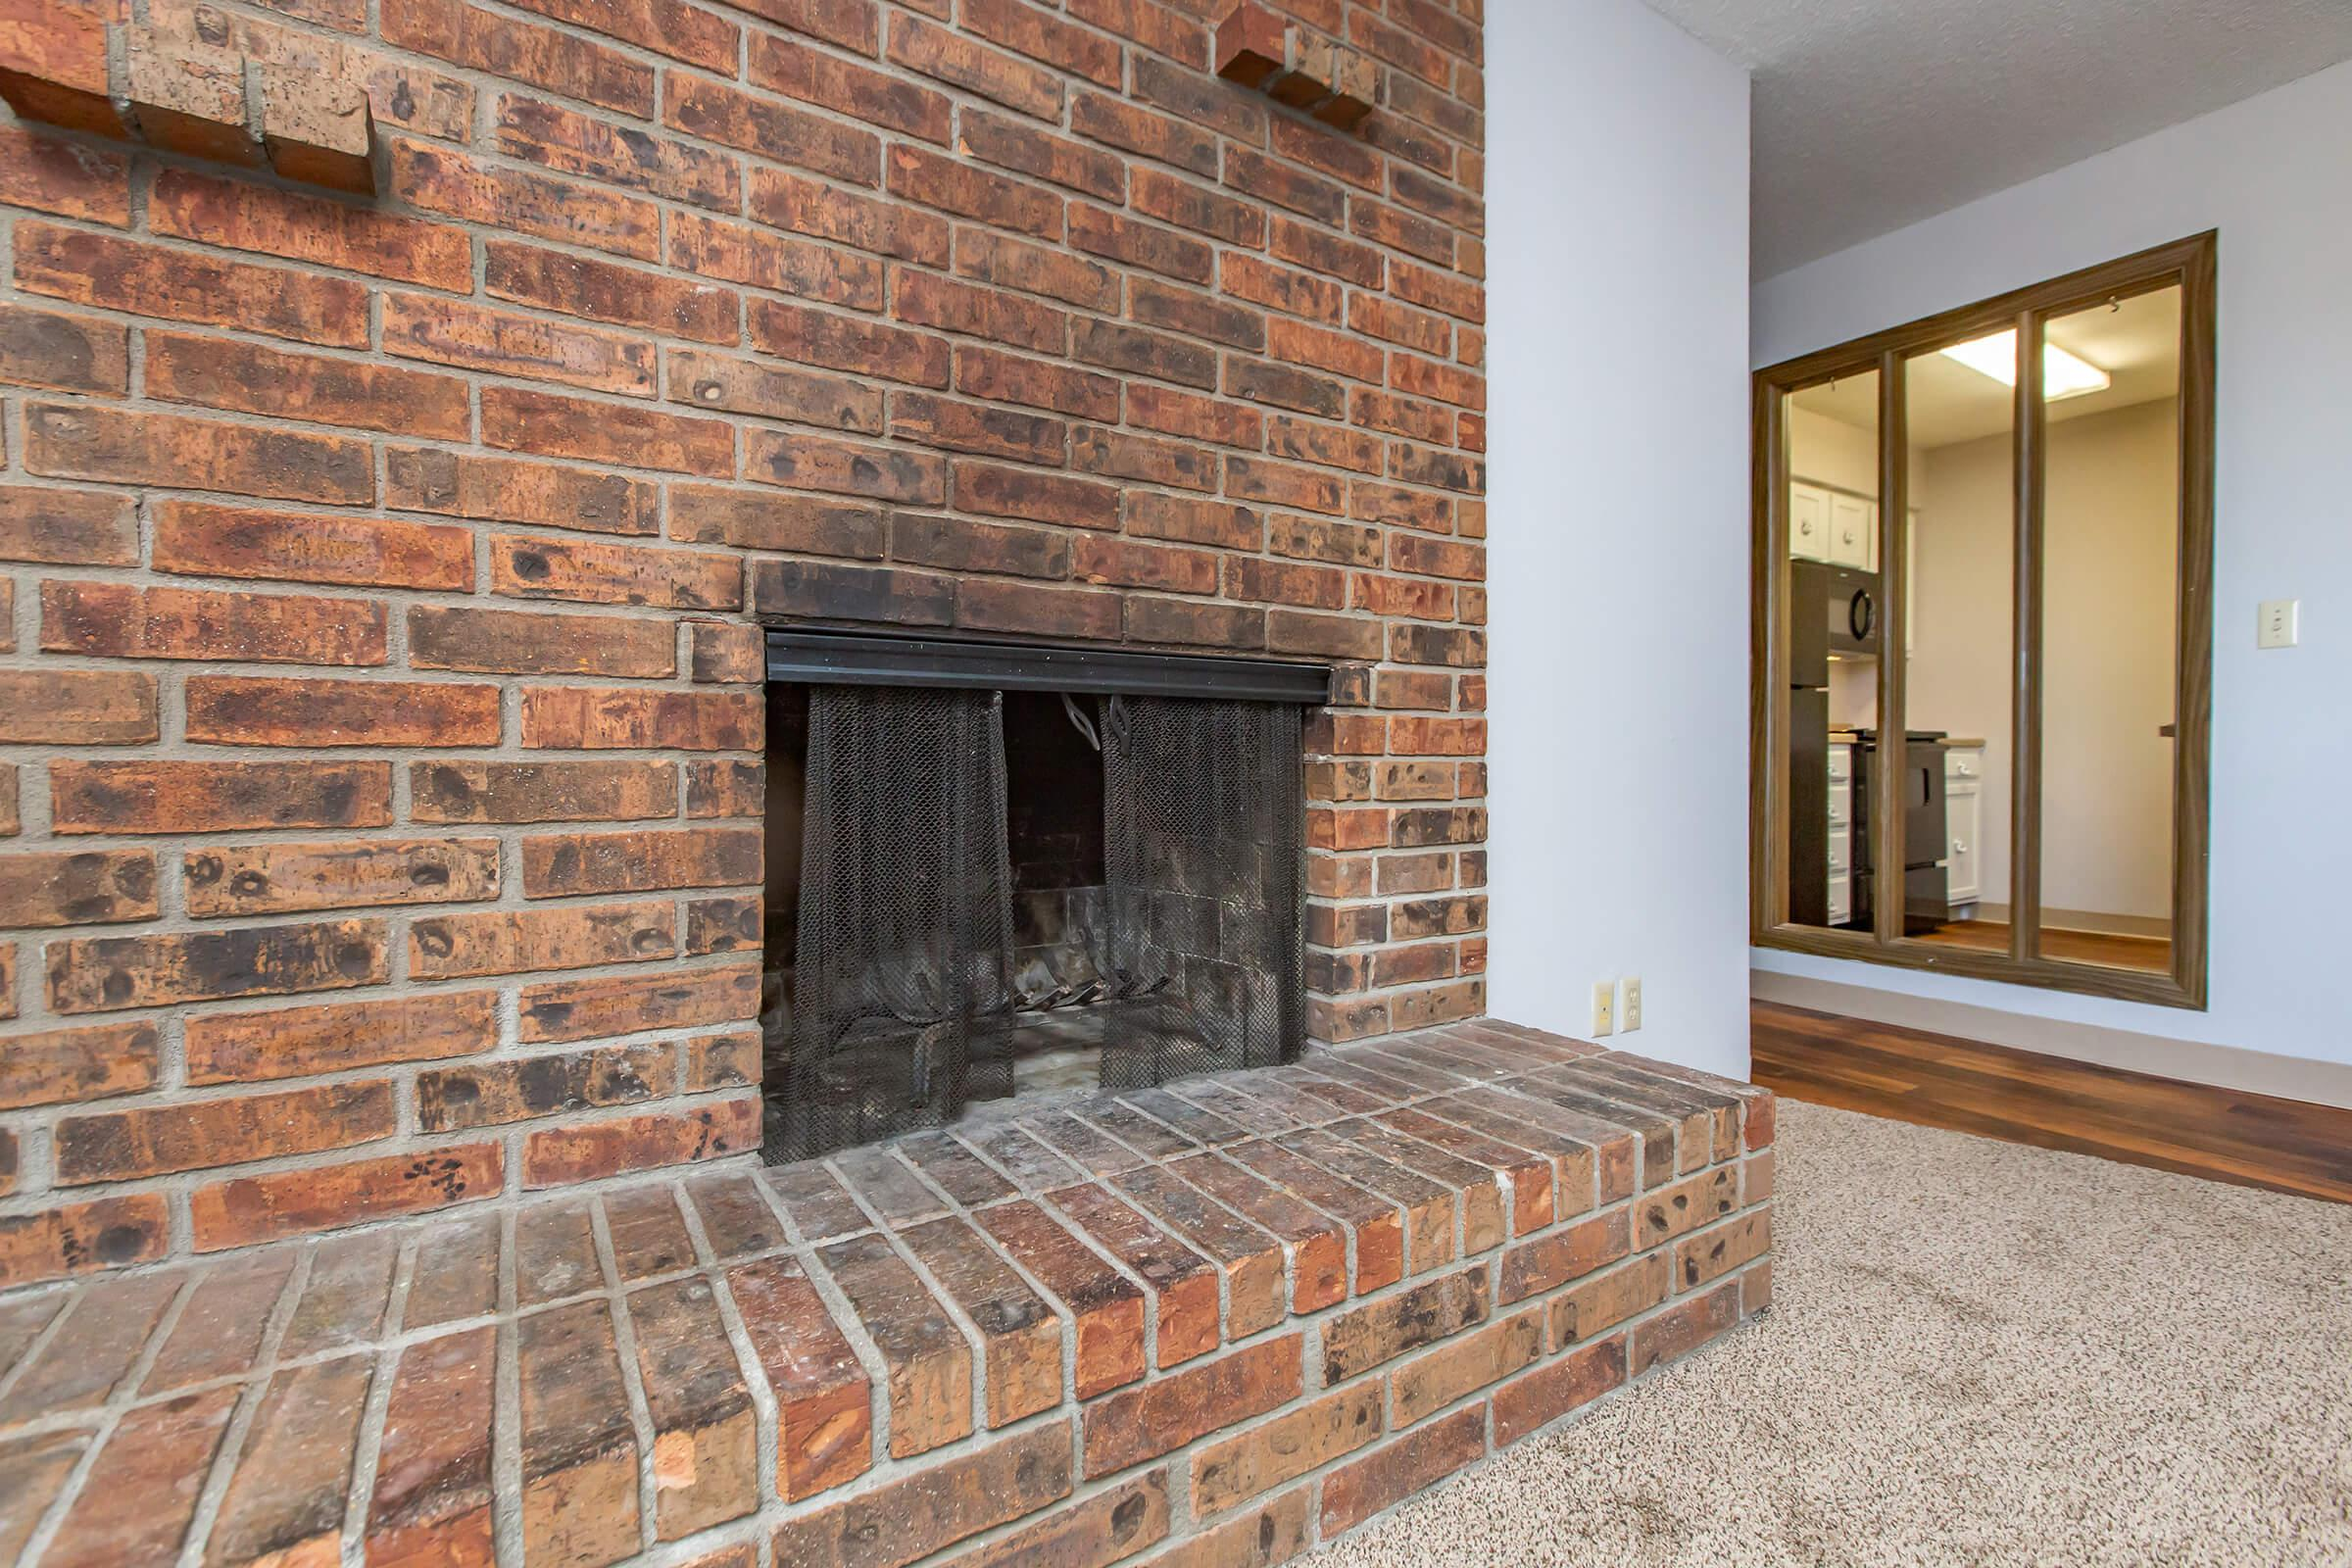 a room with a fireplace and a brick building